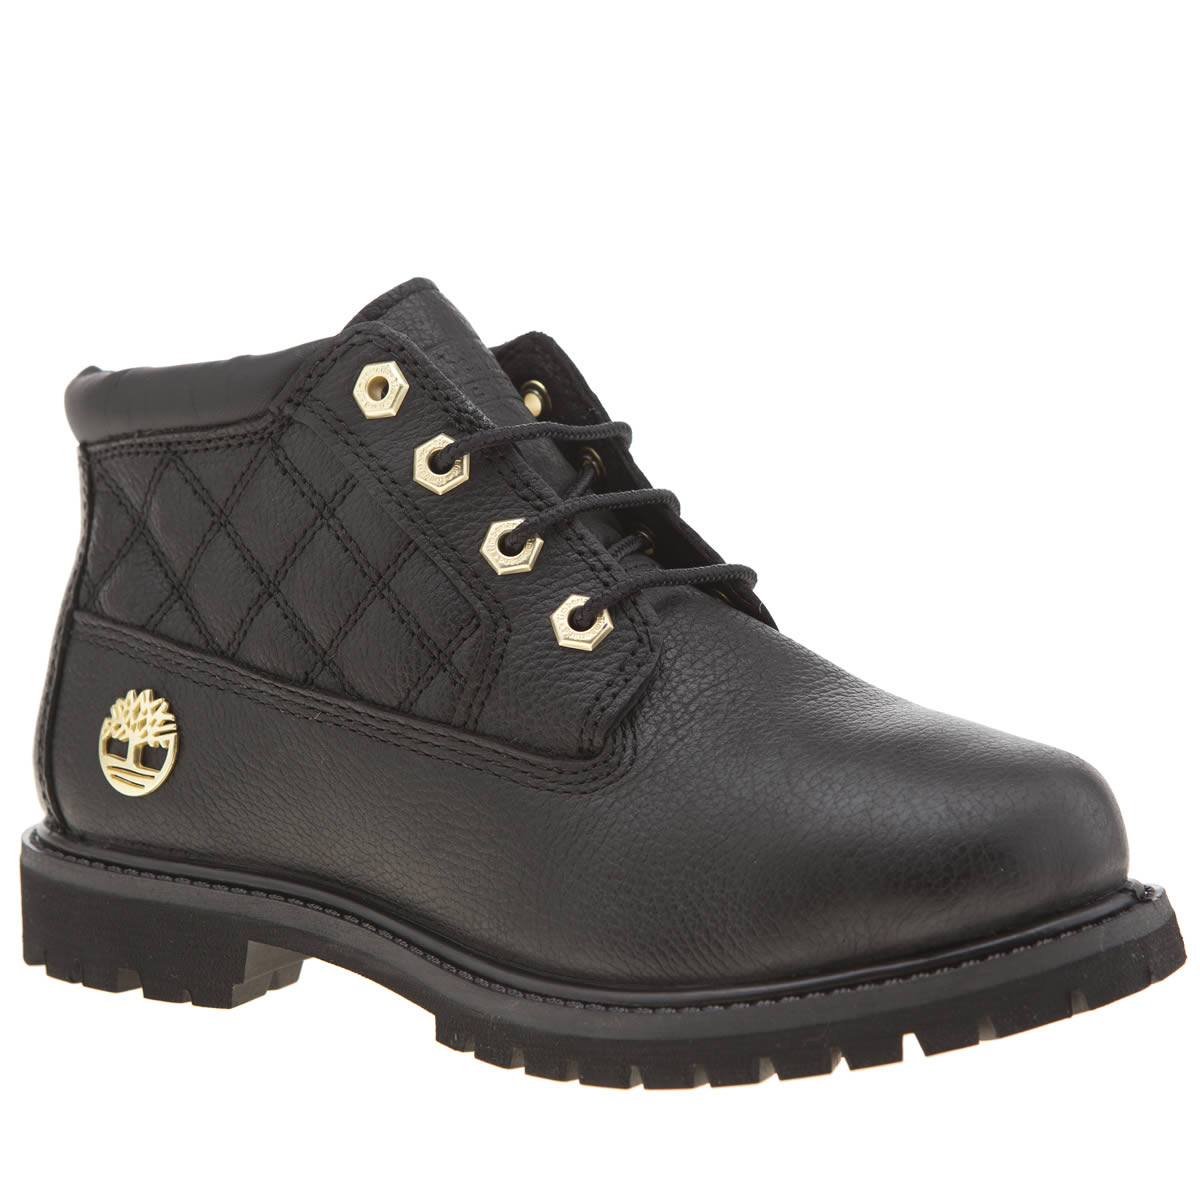 Timberland Boots Black Womens